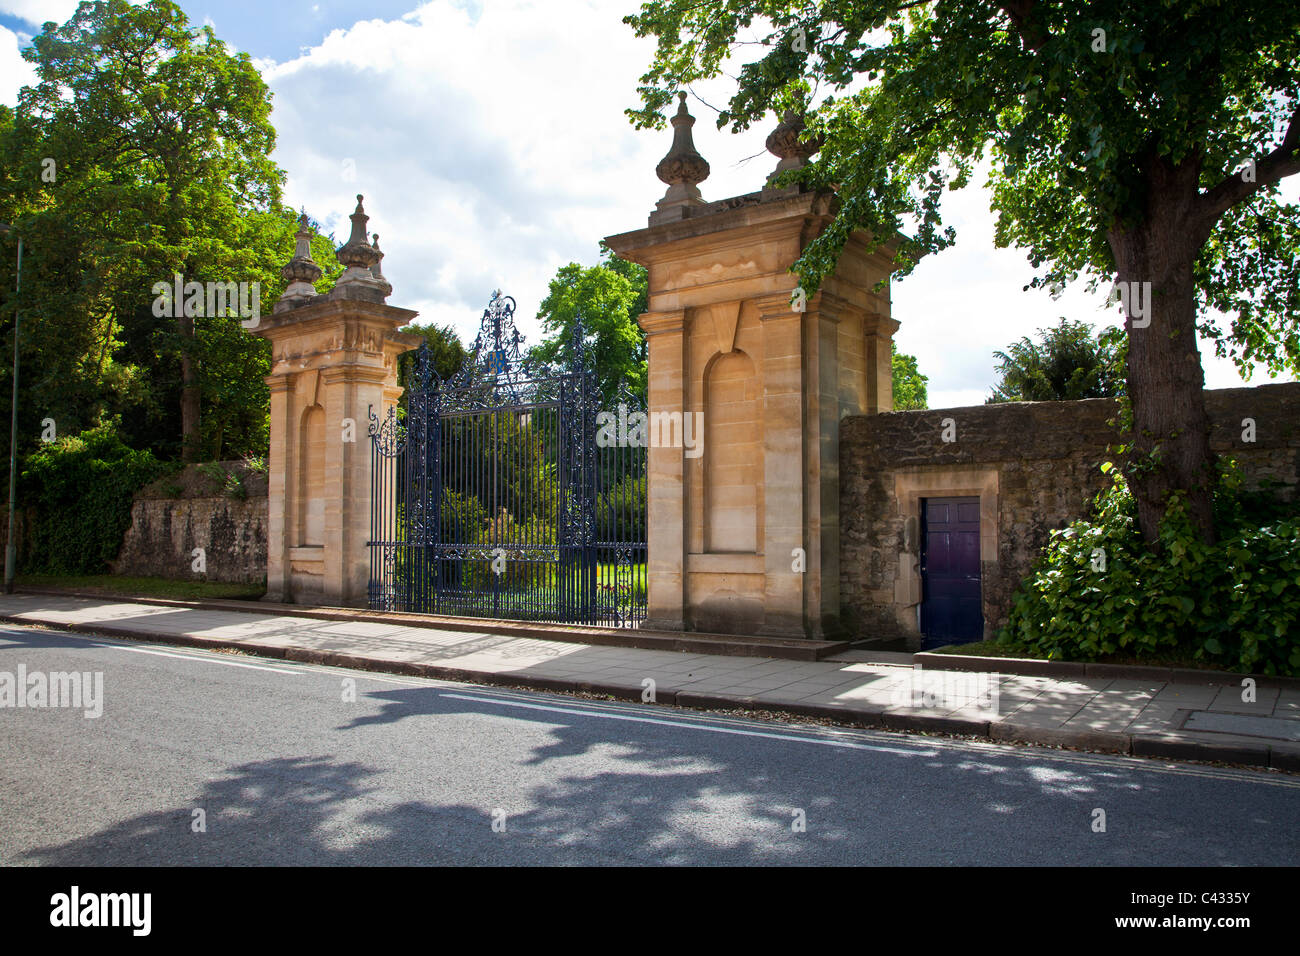 The gates of Trinity College, Oxford University, Oxfordshire, England, UK, Great Britain - Stock Image